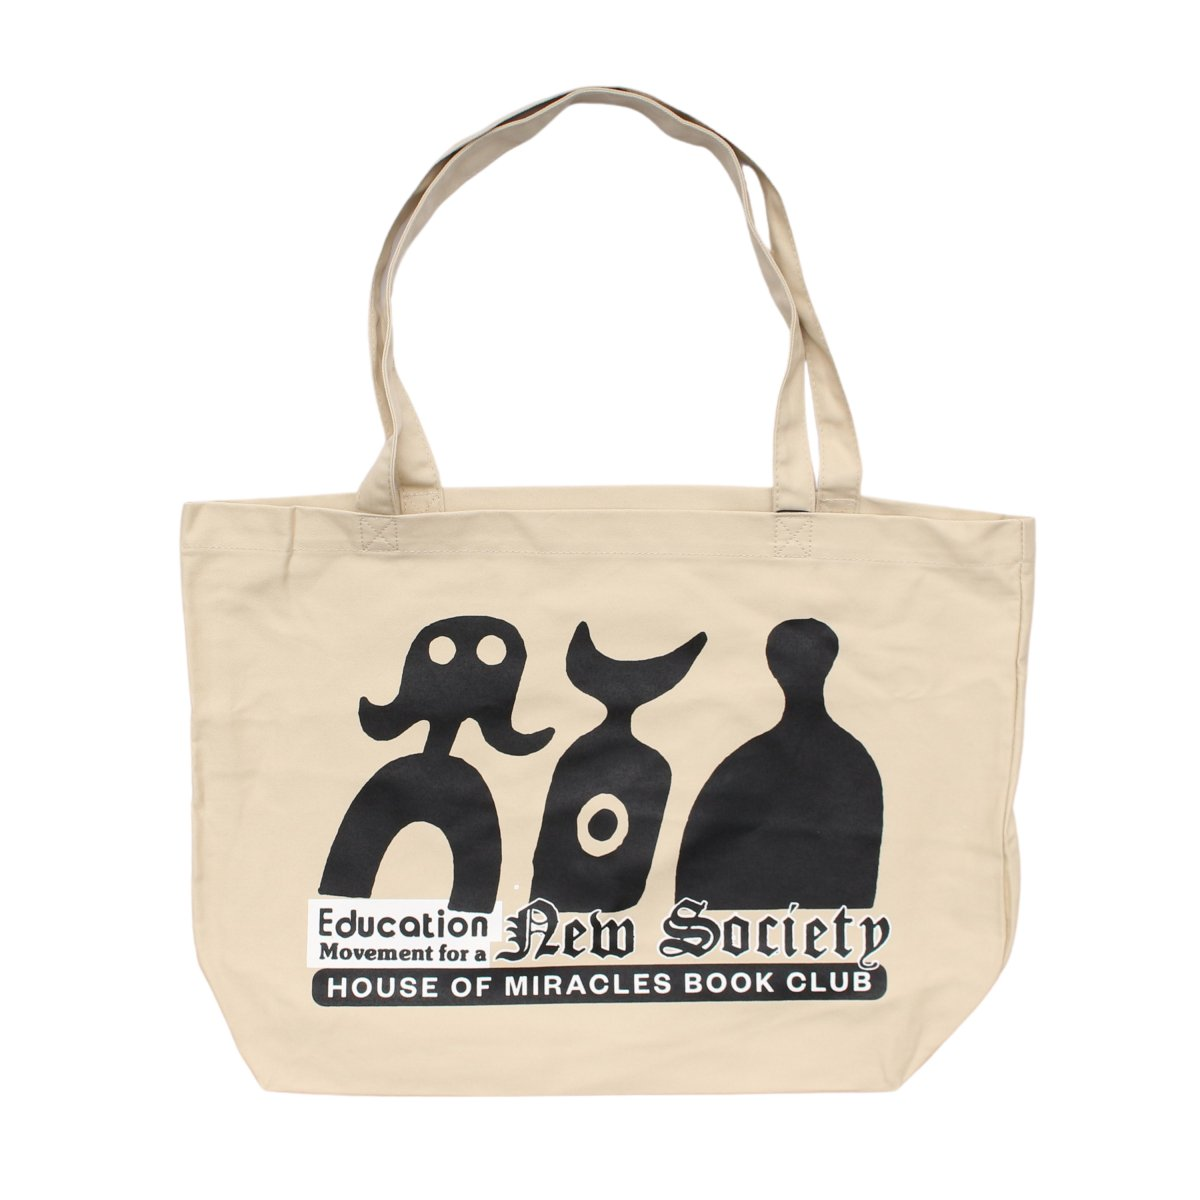 The New Society Tote